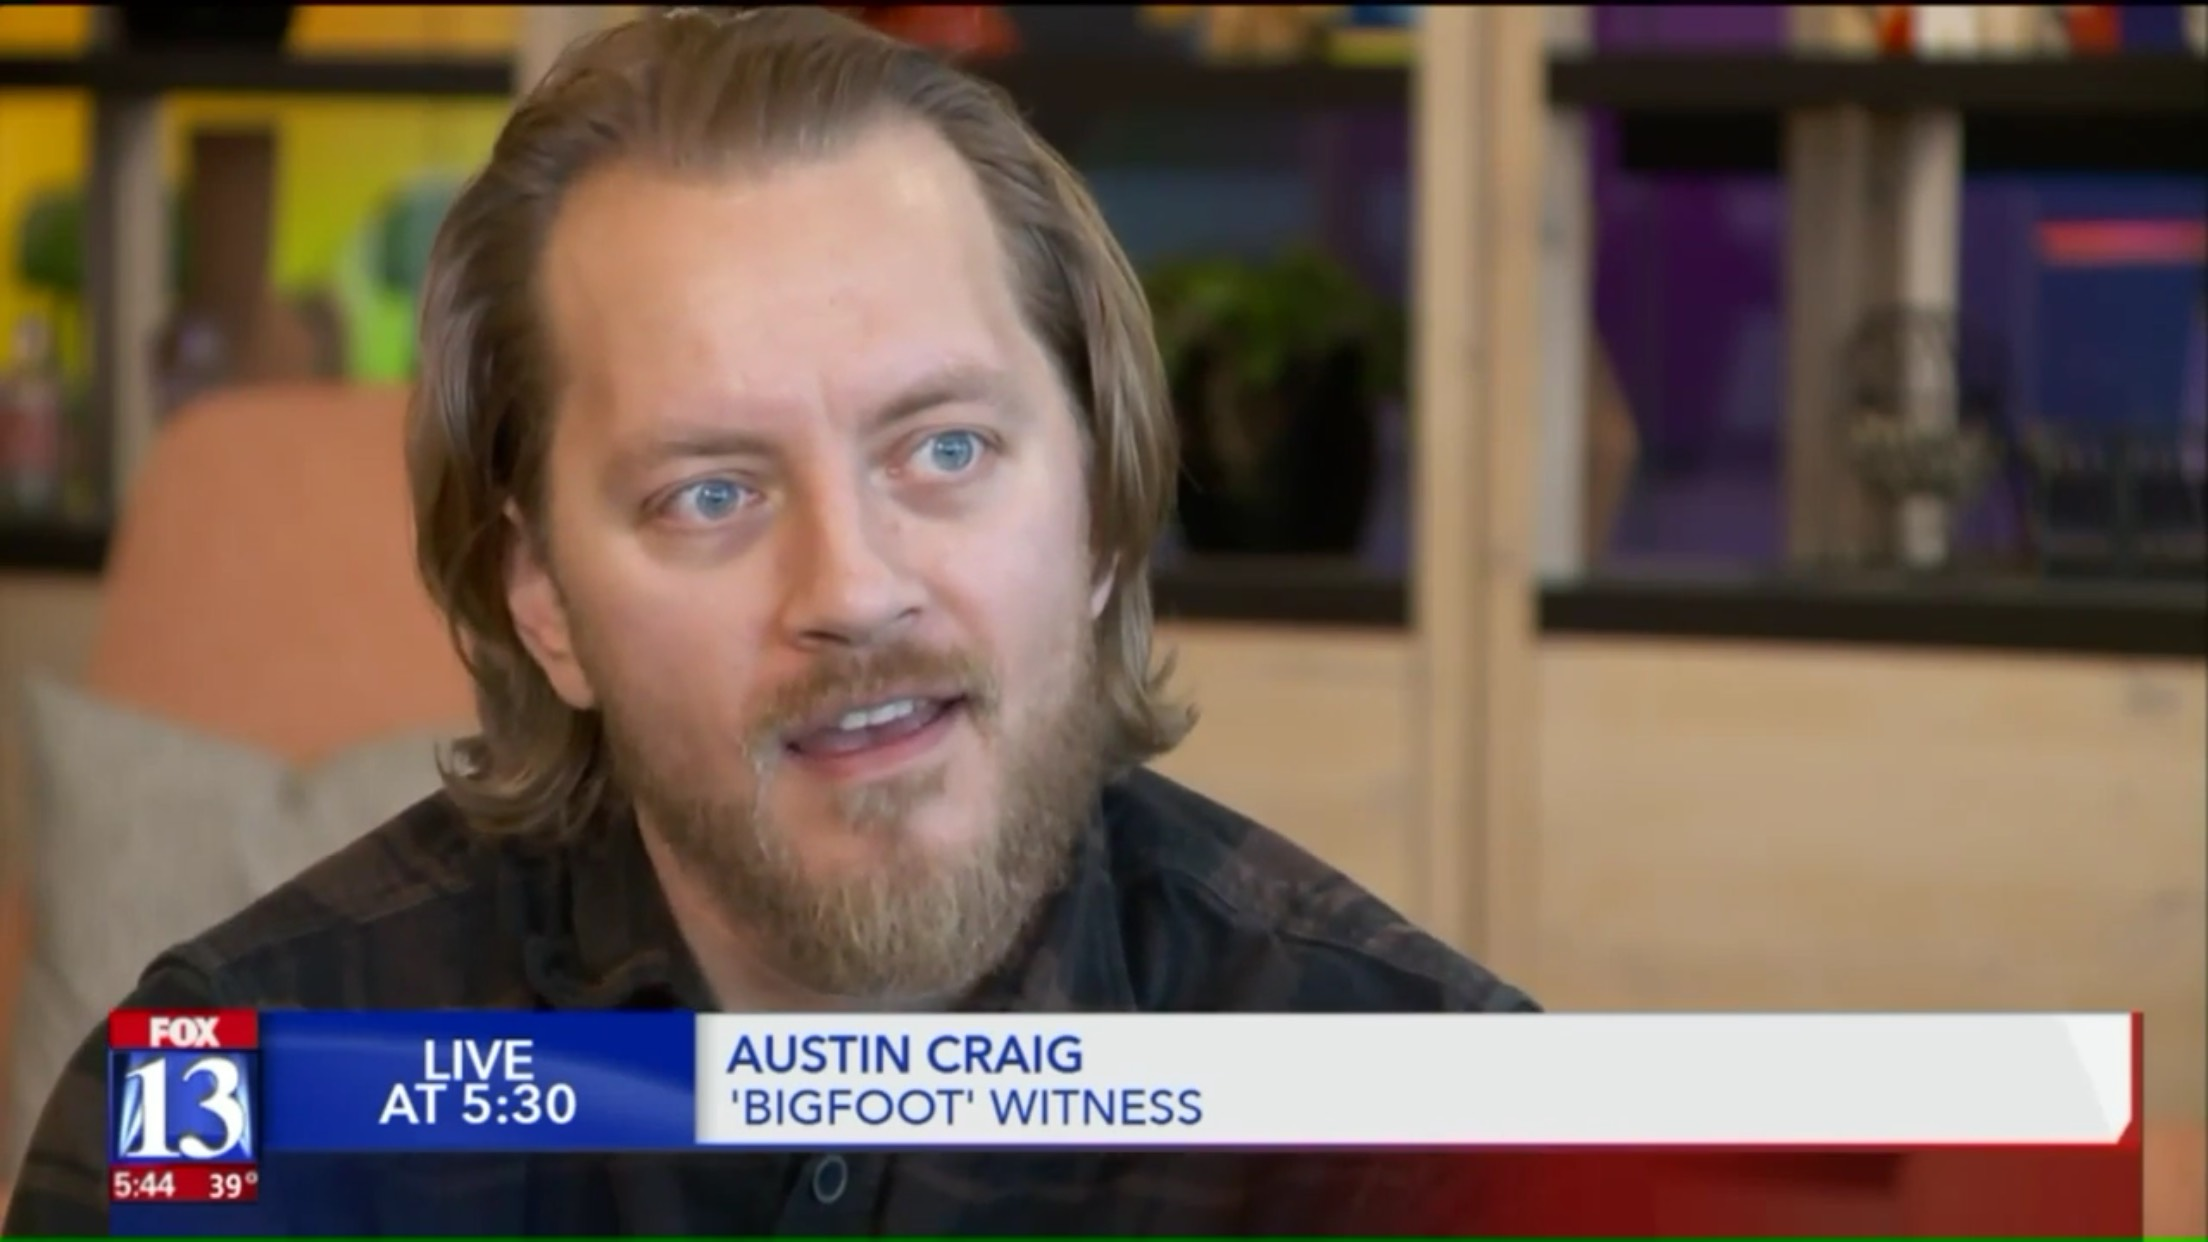 Austin Craig: 'Bigfoot' Witness